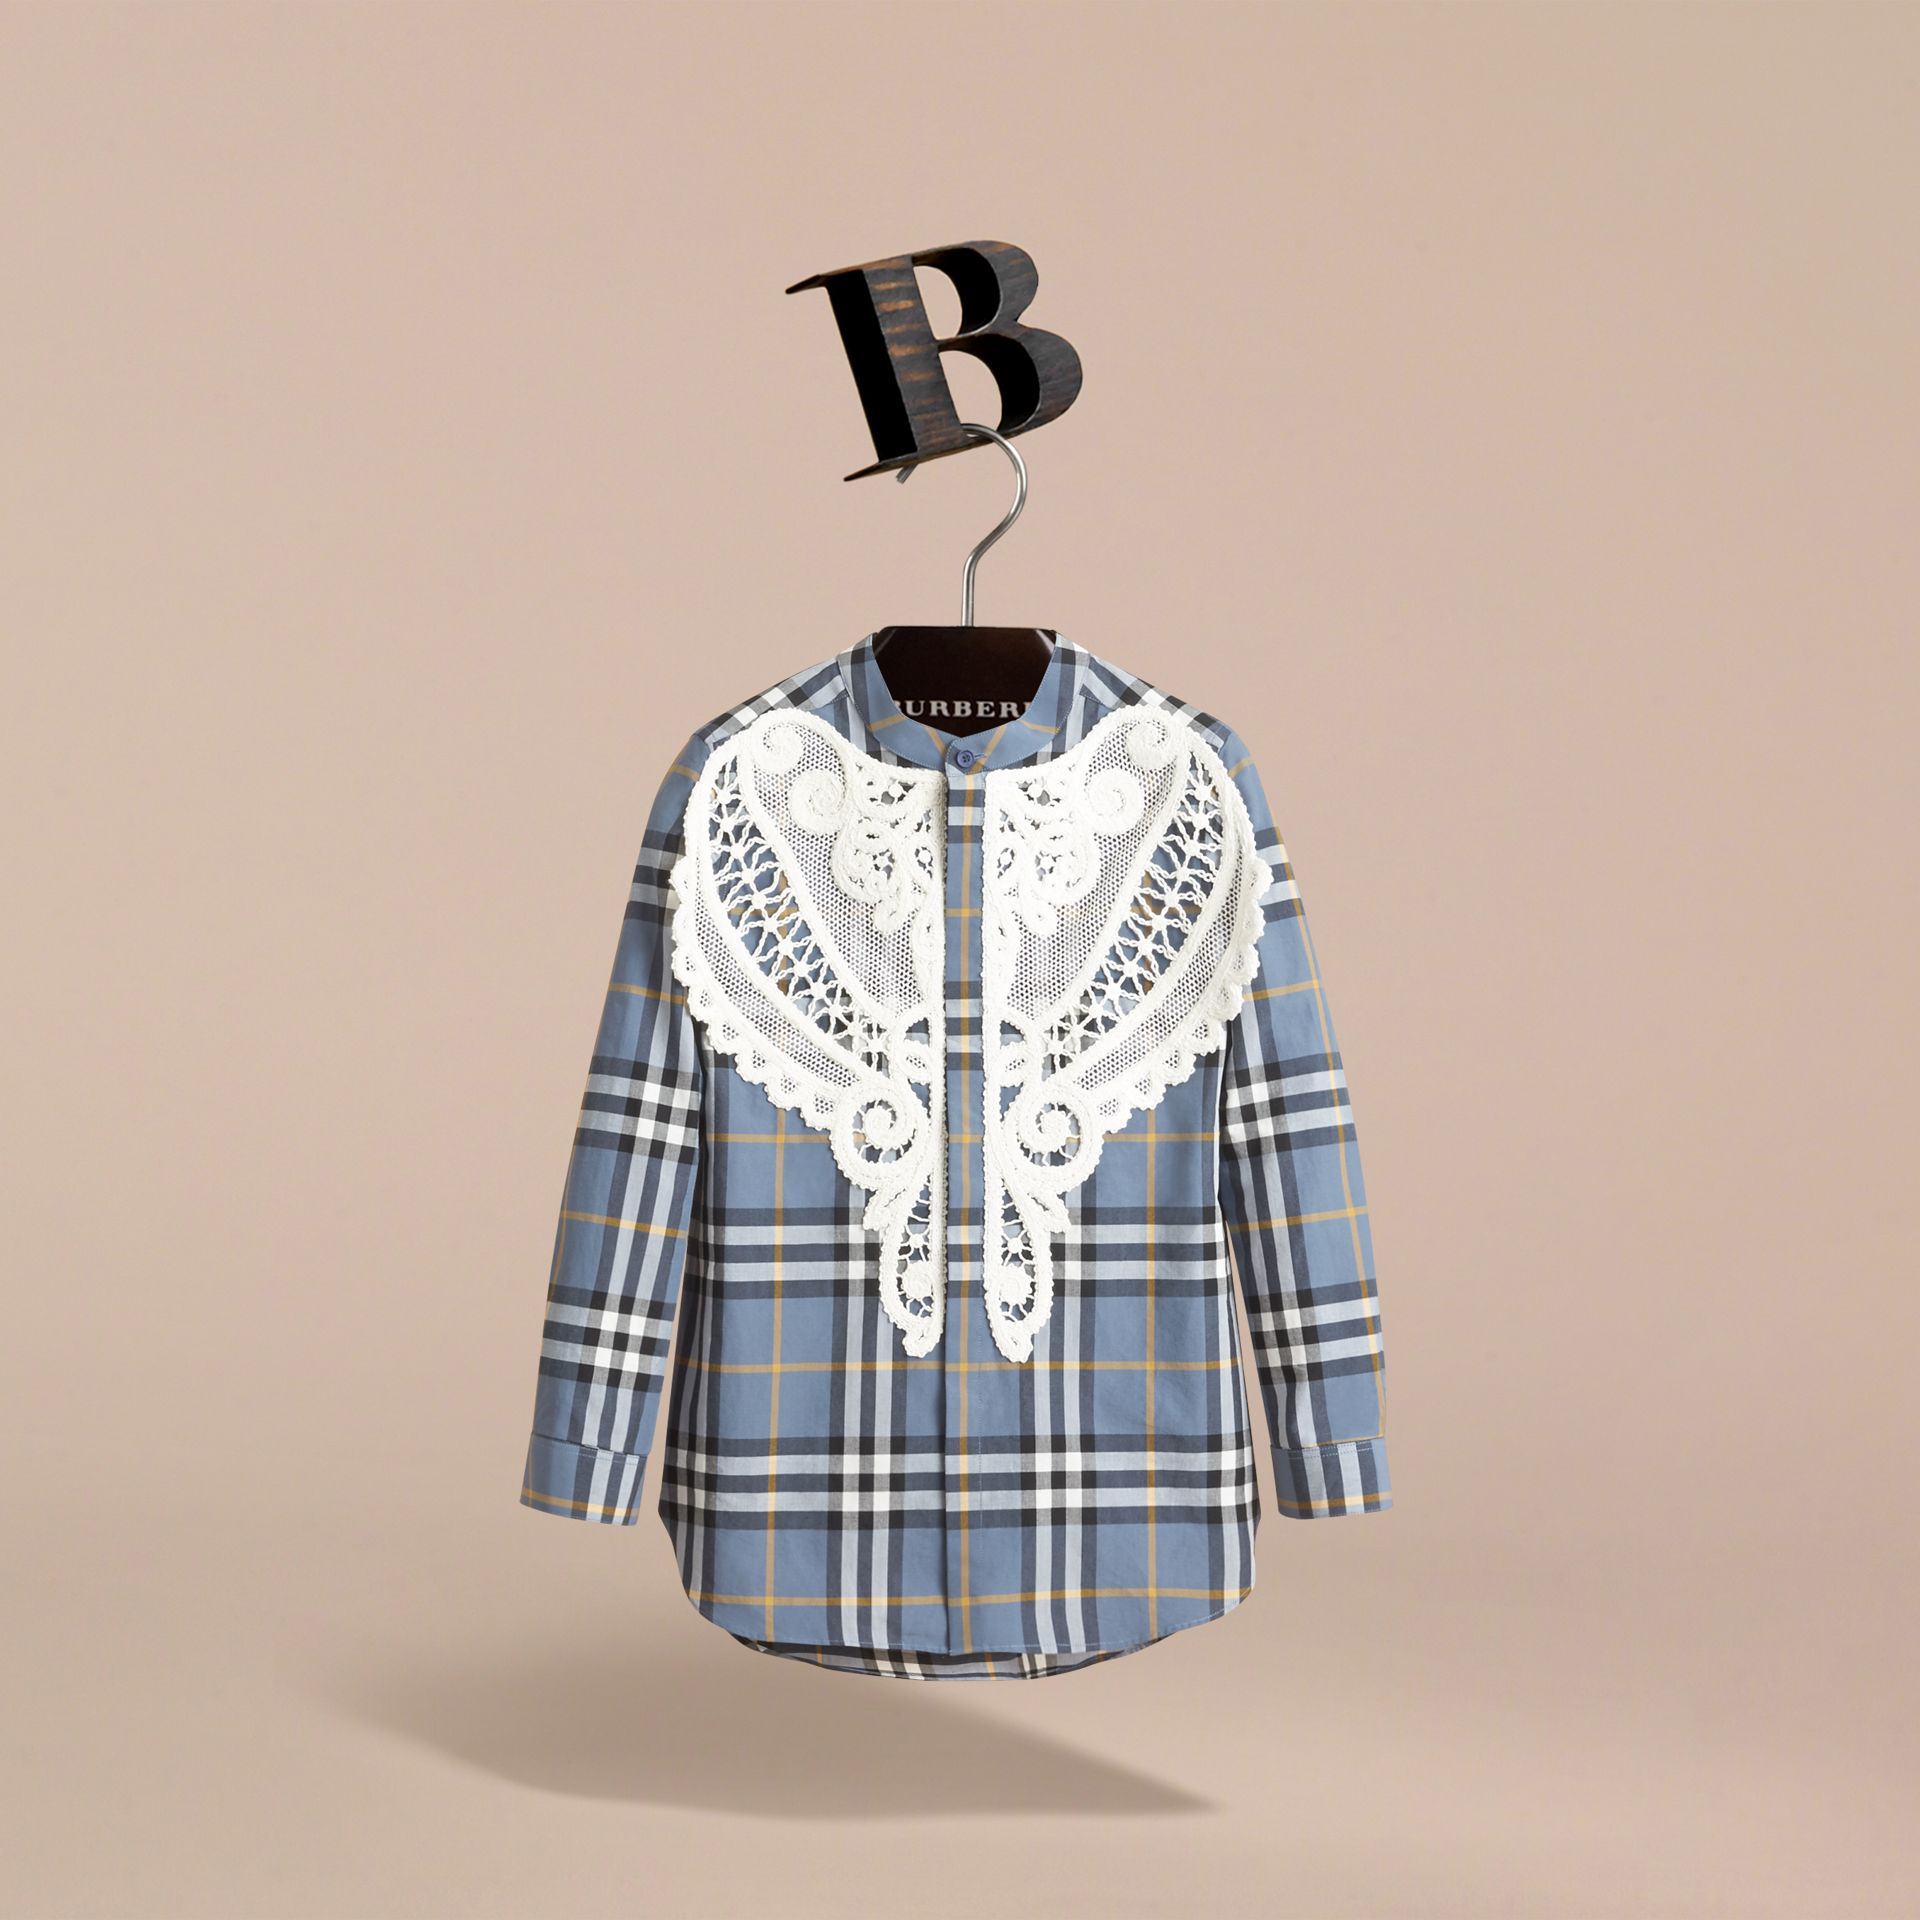 Unisex Lace Appliqué Check Cotton Shirt in Pewter Blue | Burberry - gallery image 2